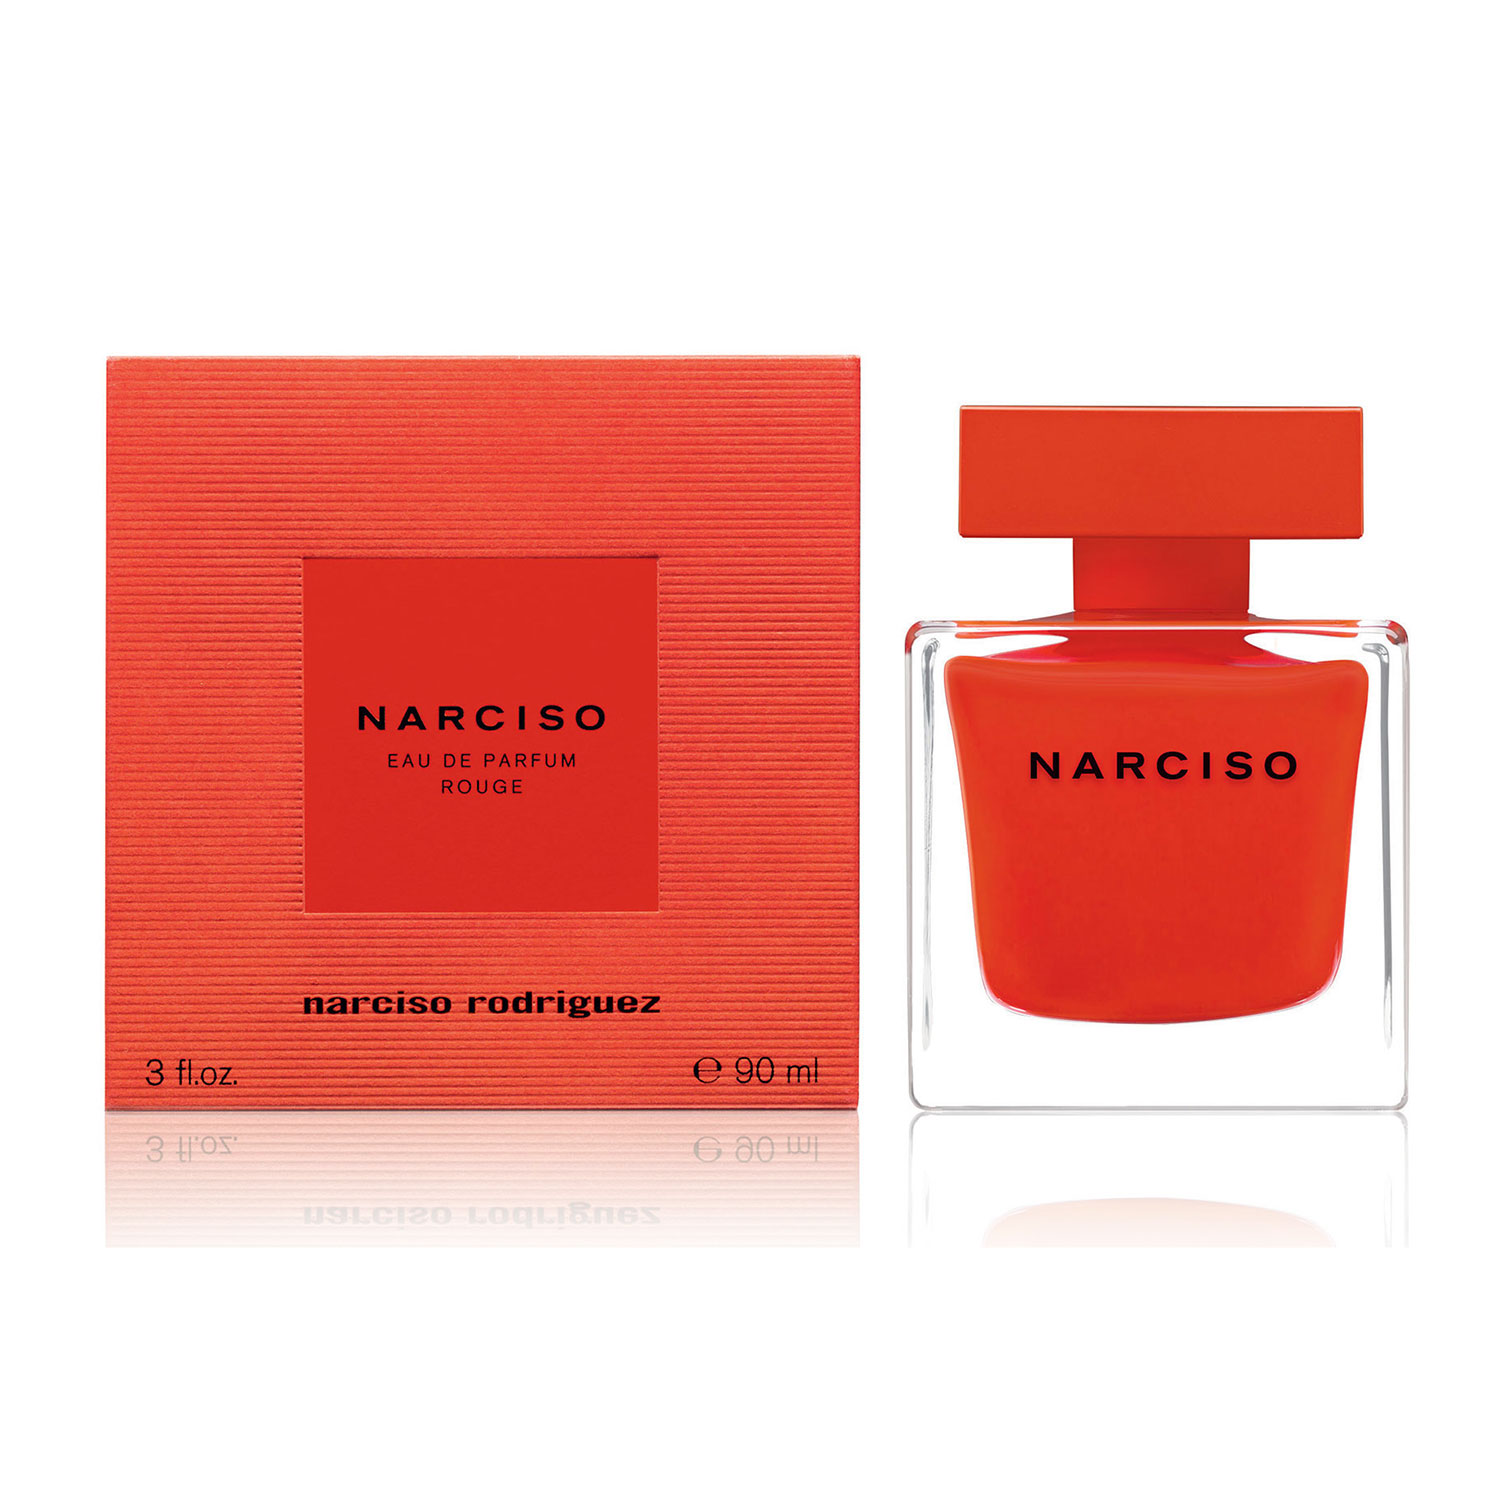 น้ำหอม Narciso Rouge By Narciso Rodriguez for women 90ml กล่องซีล